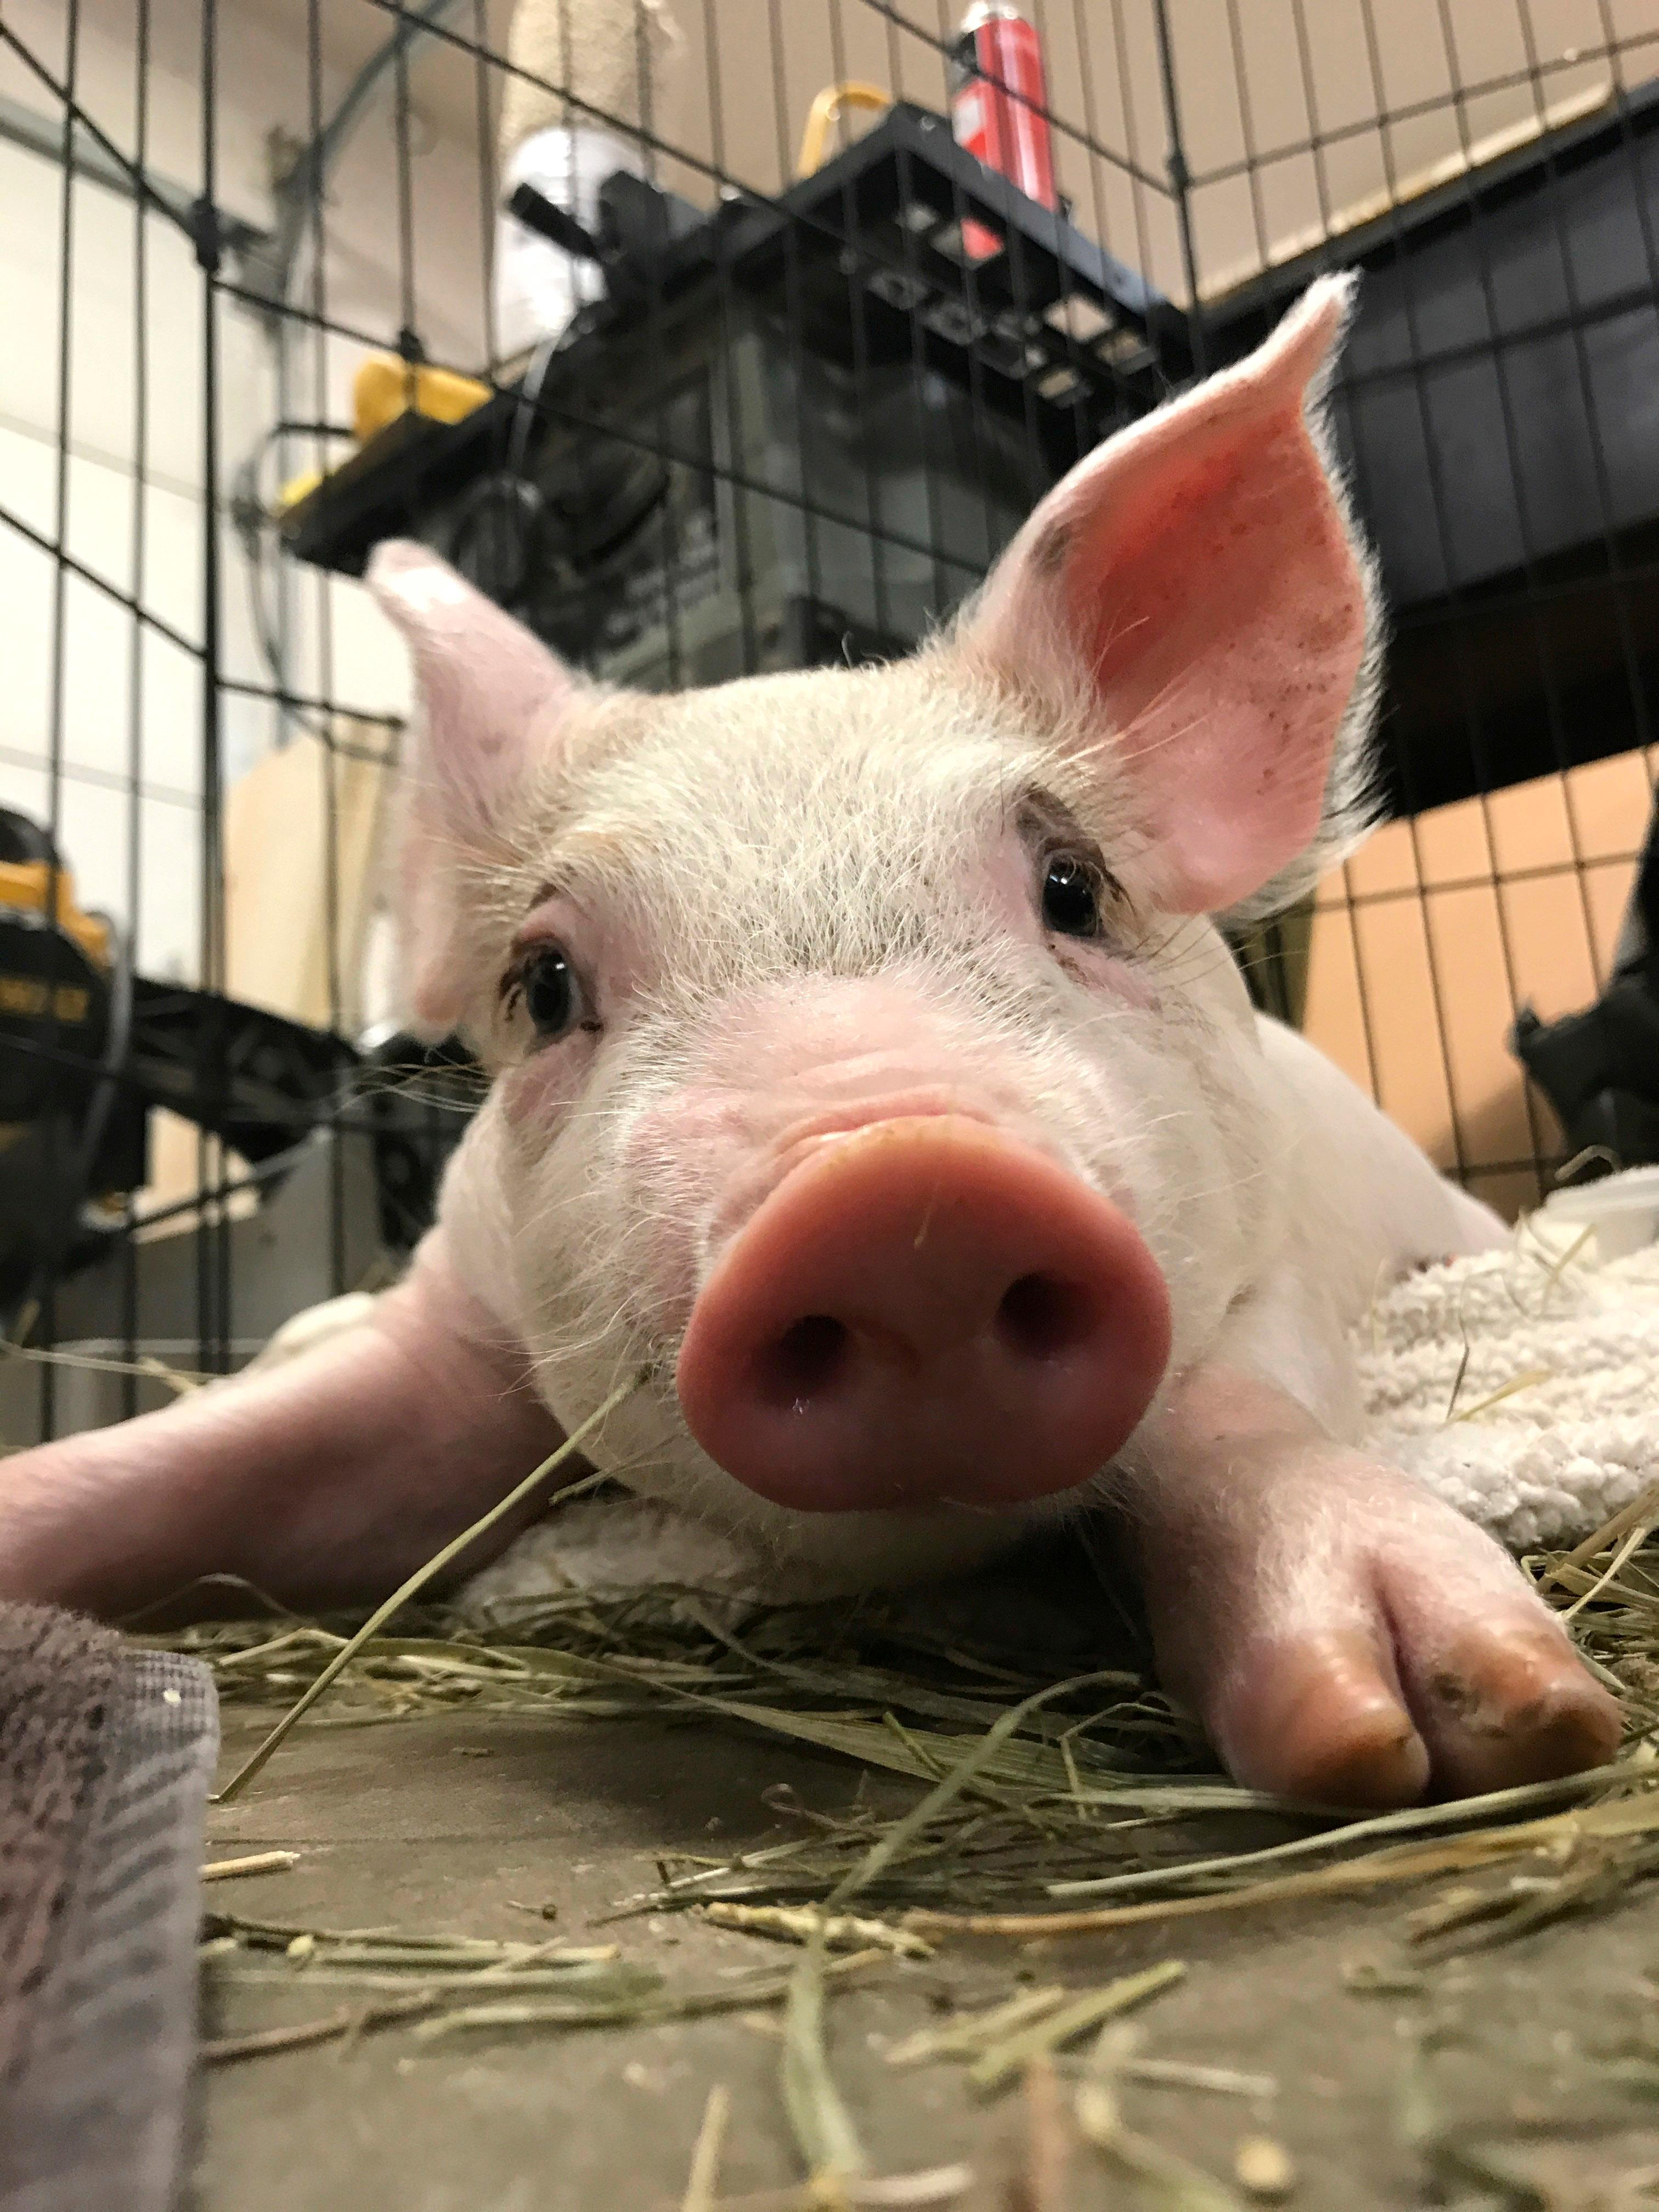 In this Thursday, Aug. 3, 2017 photo provided by Francesca McAndrews, a piglet, who McAndrews named Enzo sits in a pen in Lancaster, Pa. McAndrews, who rescued the piglet that was darting in and out of morning rush hour traffic, is getting help from local businesses to fund a surgery the animal needs to survive.  (Francesca McAndrews via AP)